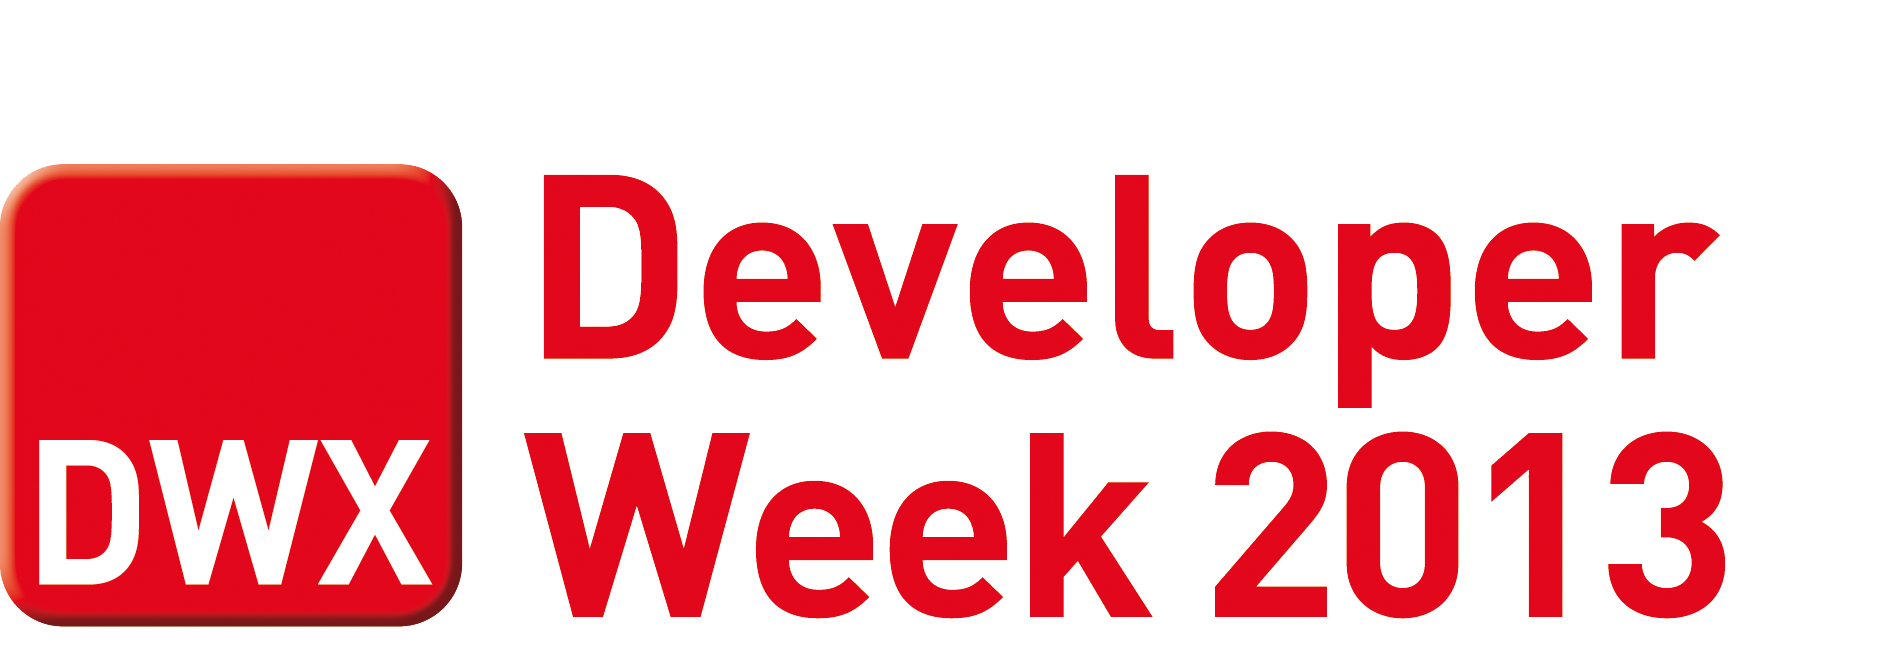 Logo_Developer Week_2013